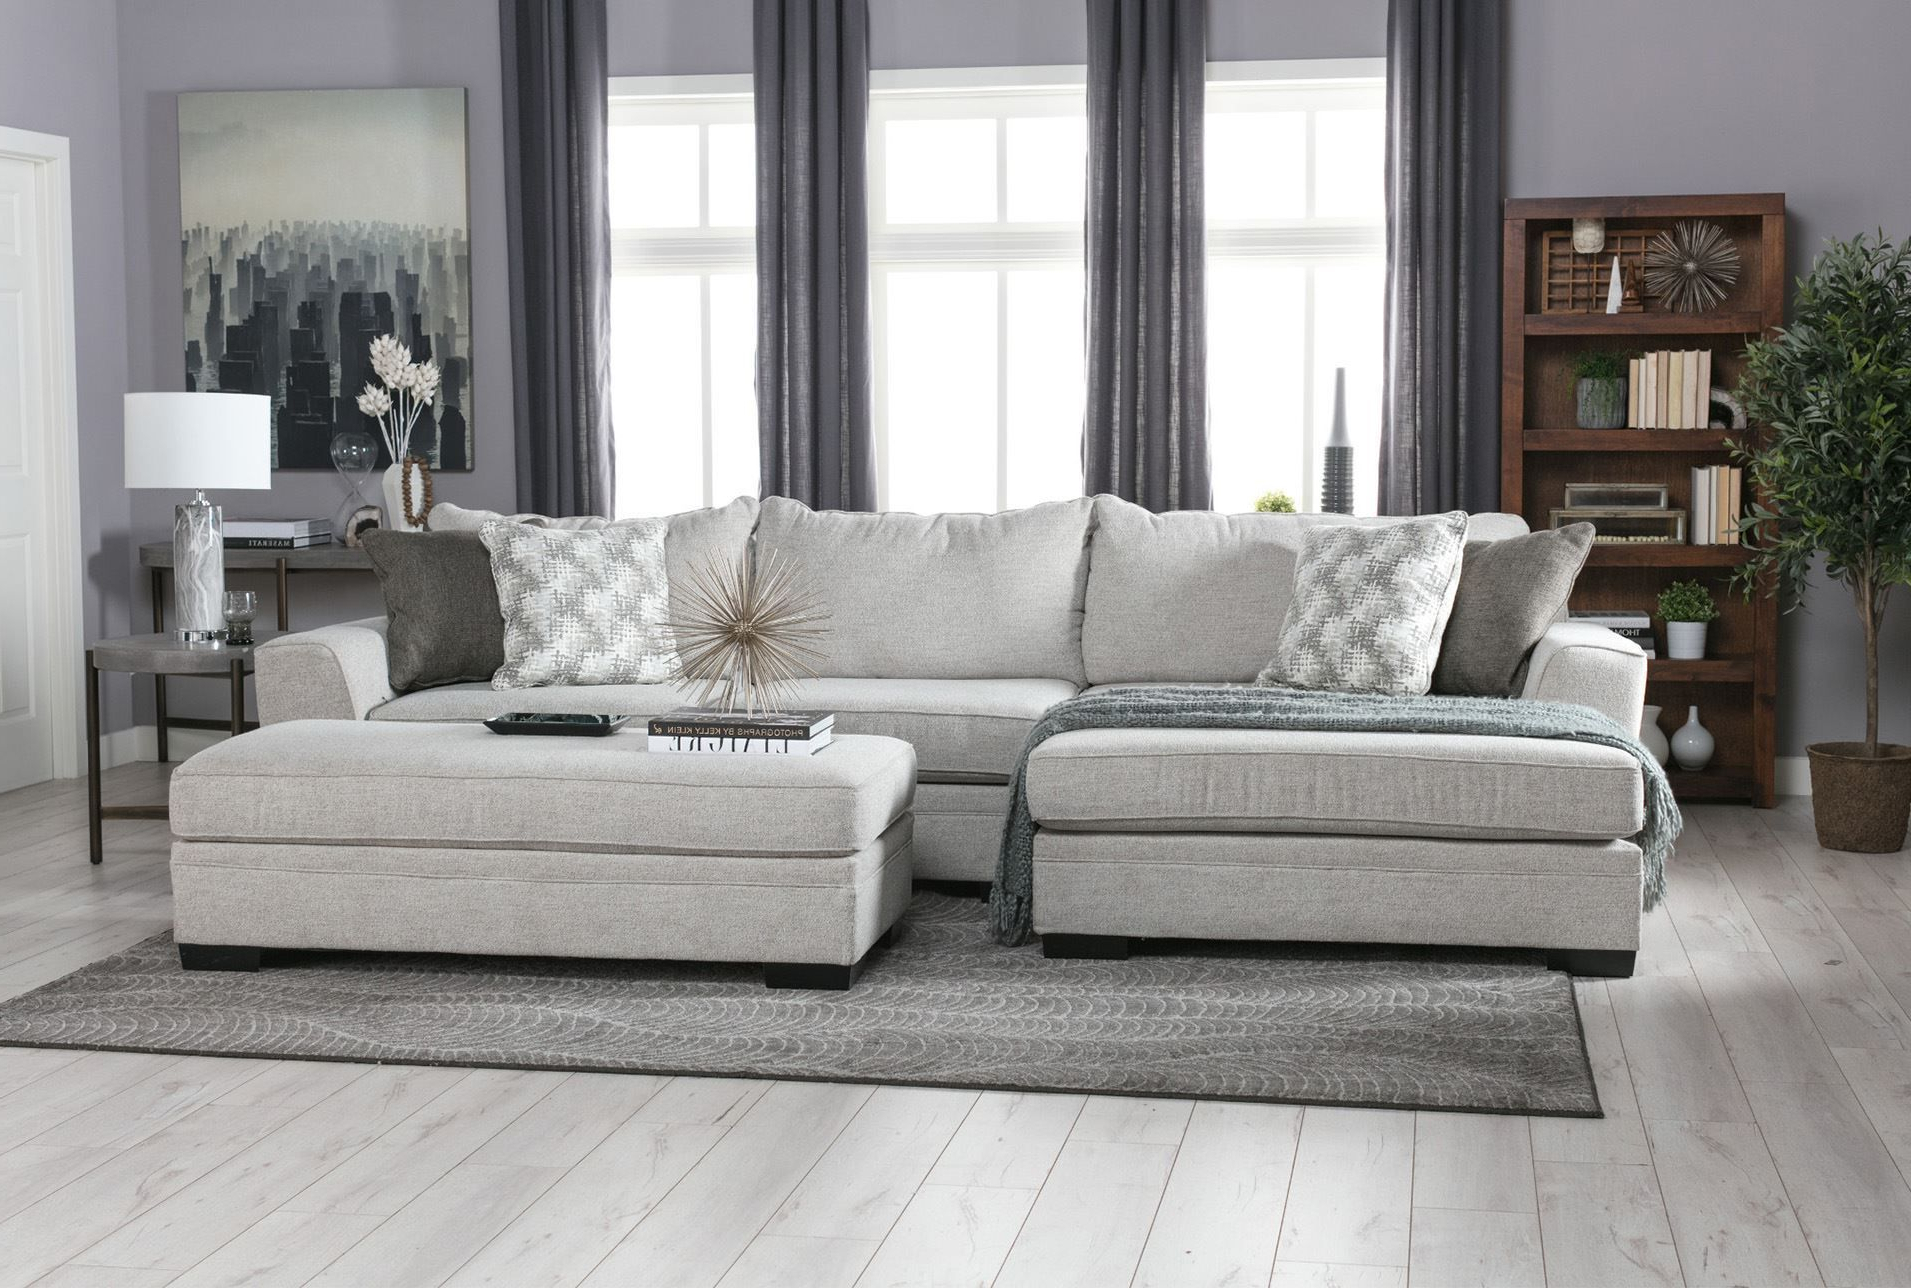 Delano 2 Piece Sectional W/laf Oversized Chaise In 2018 (Gallery 2 of 20)